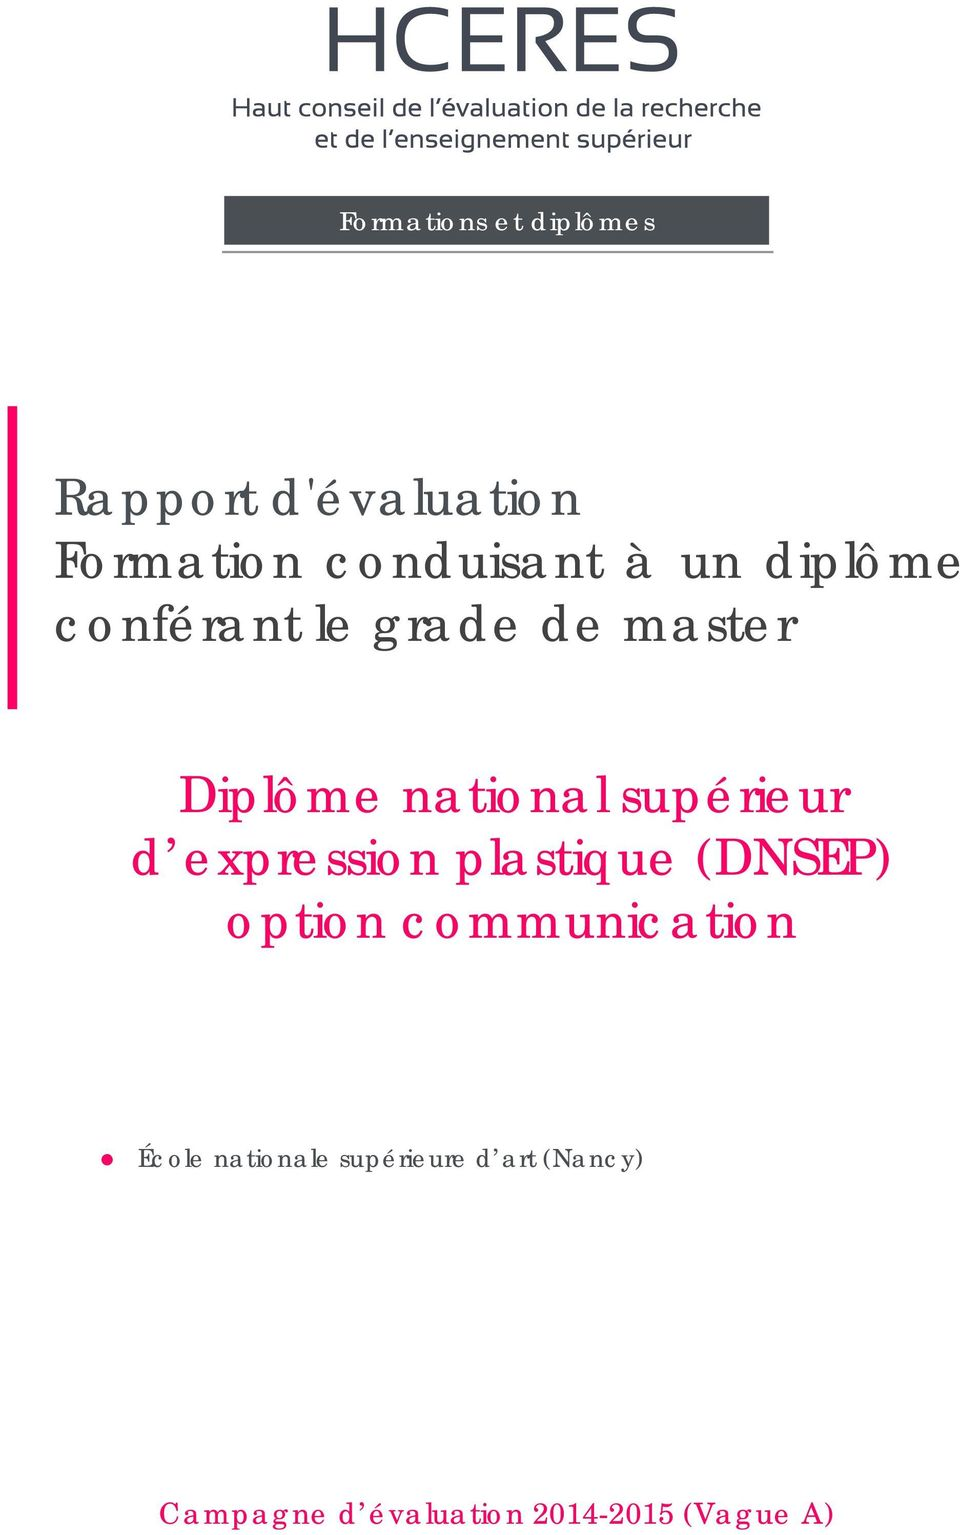 d expression plastique (DNSEP) option communication École